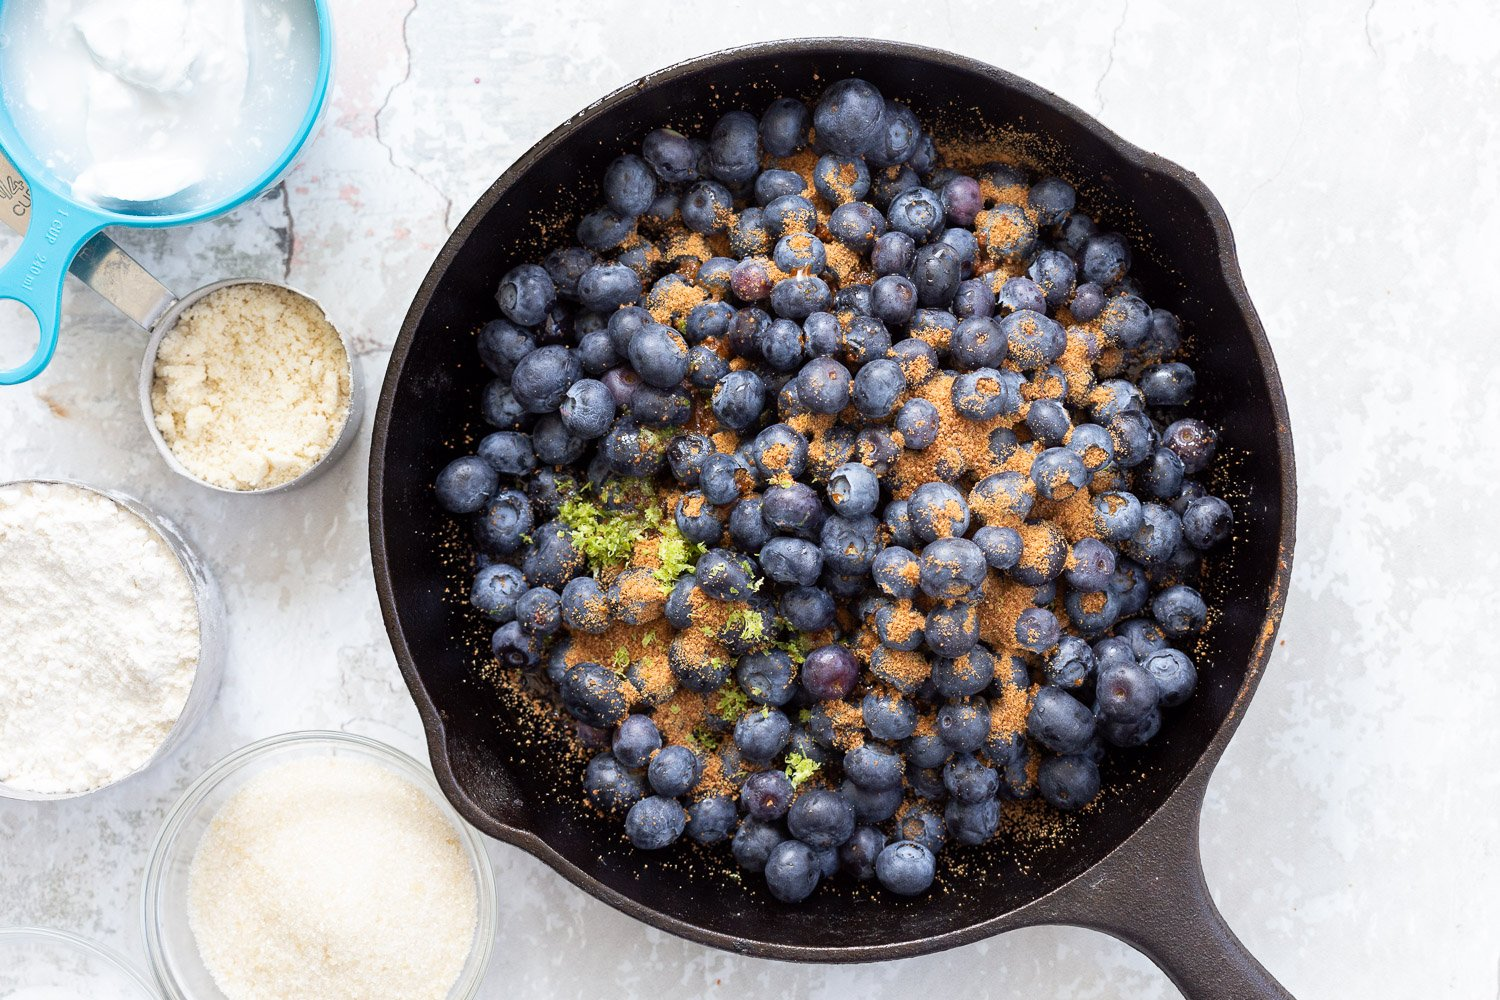 Blueberries sugar and lemon zest in cast iron skillet for our Vegan Blueberry Cobbler